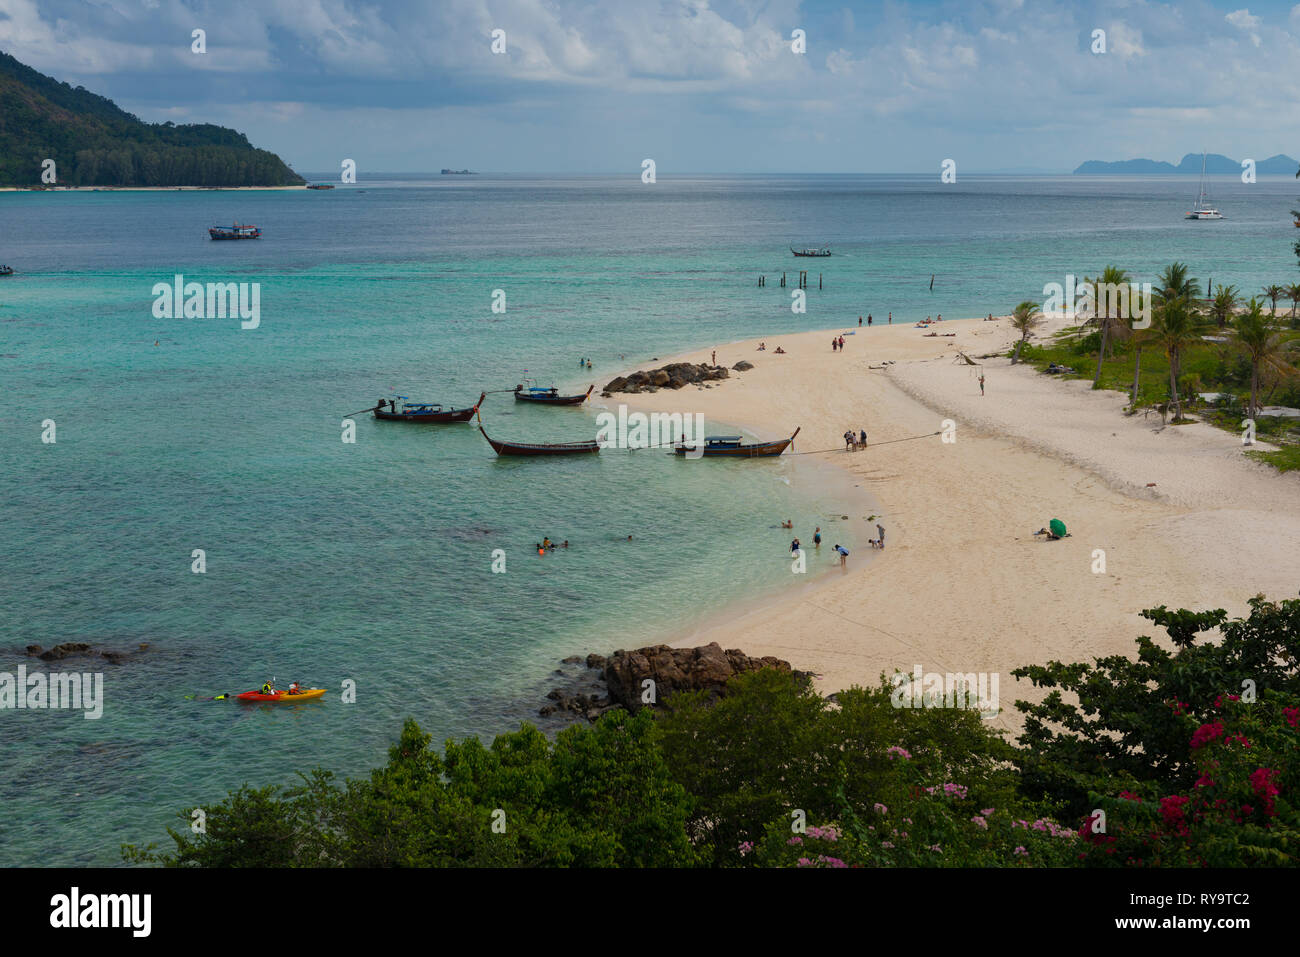 Aerial view of Ko Lipe Sunrise beach with longtail boats and kayaks, Thailand Stock Photo